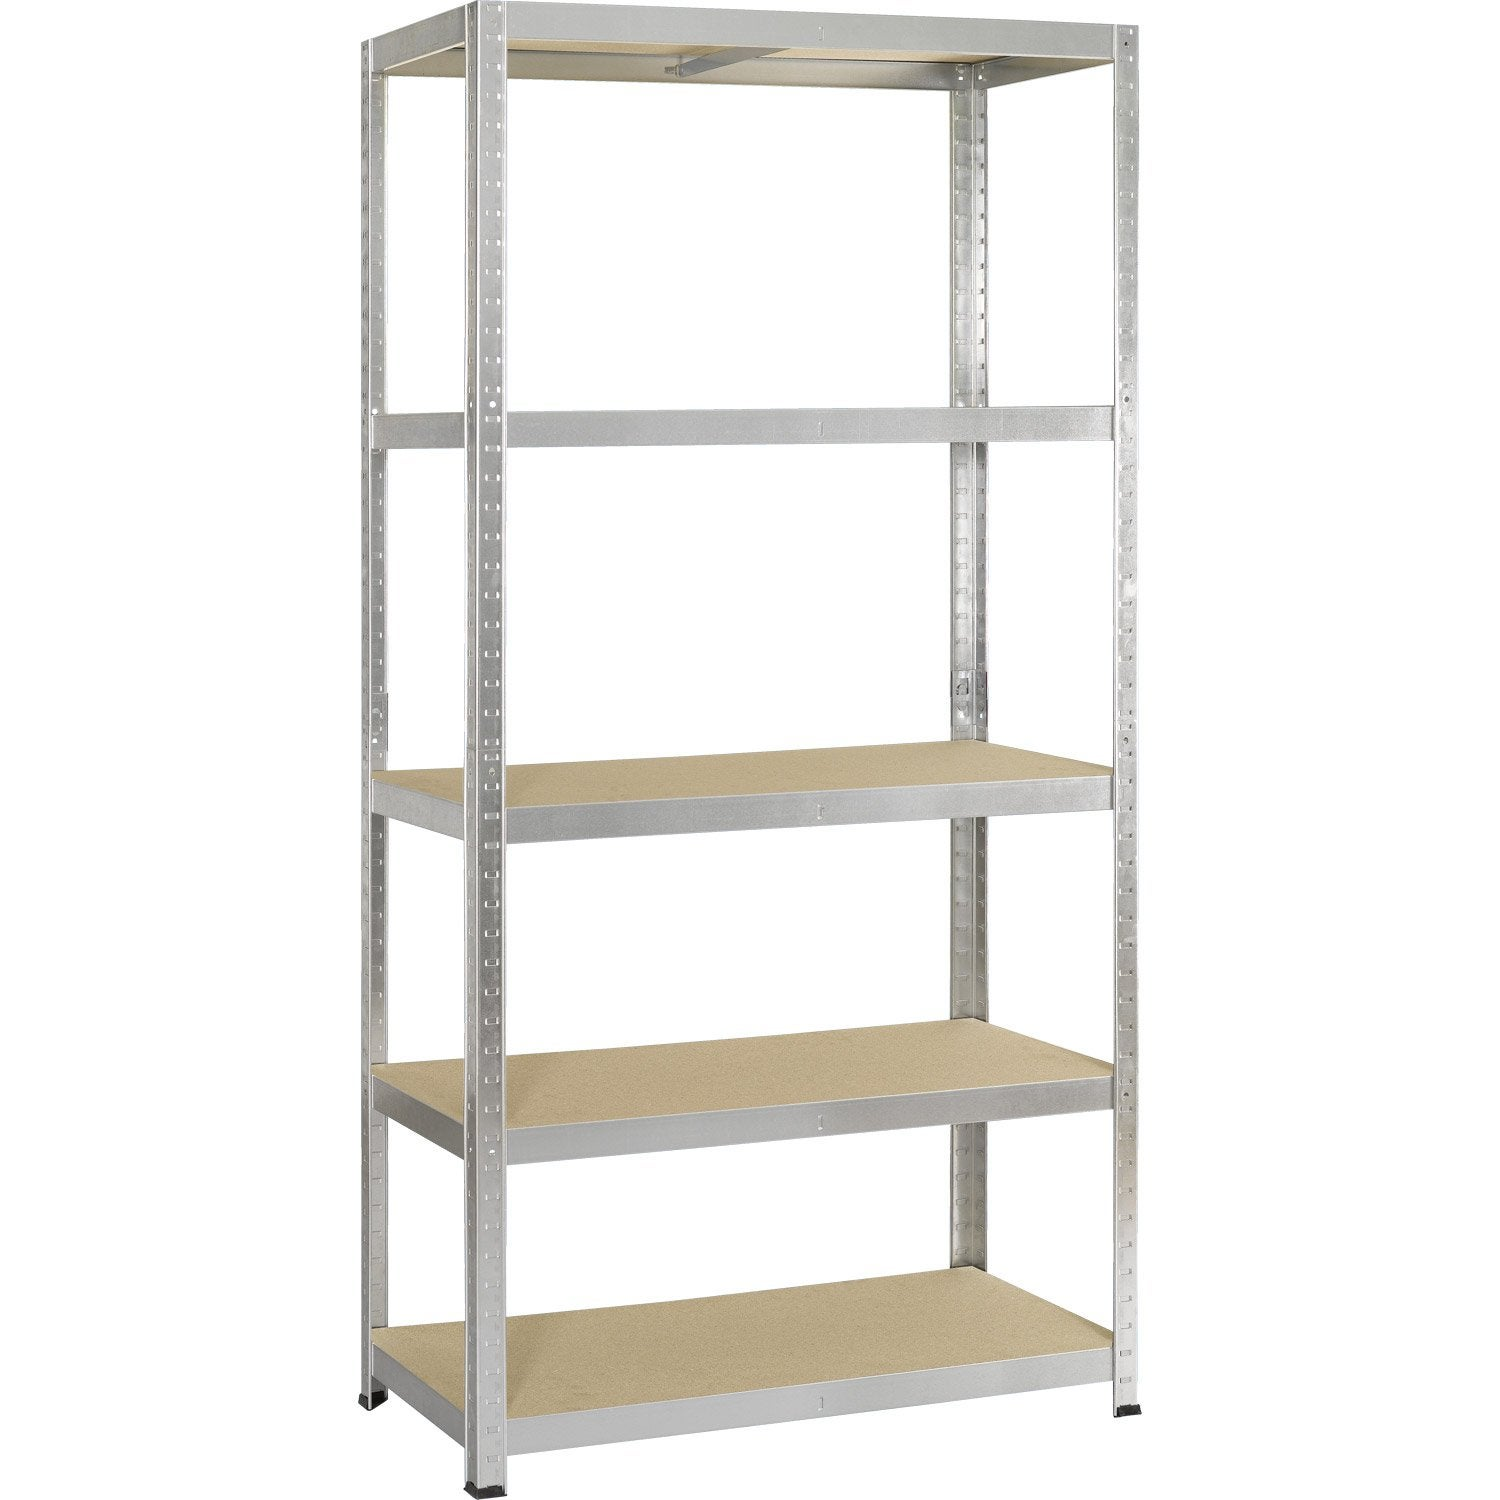 Etagere metal avasco racky for Etageres murales metalliques